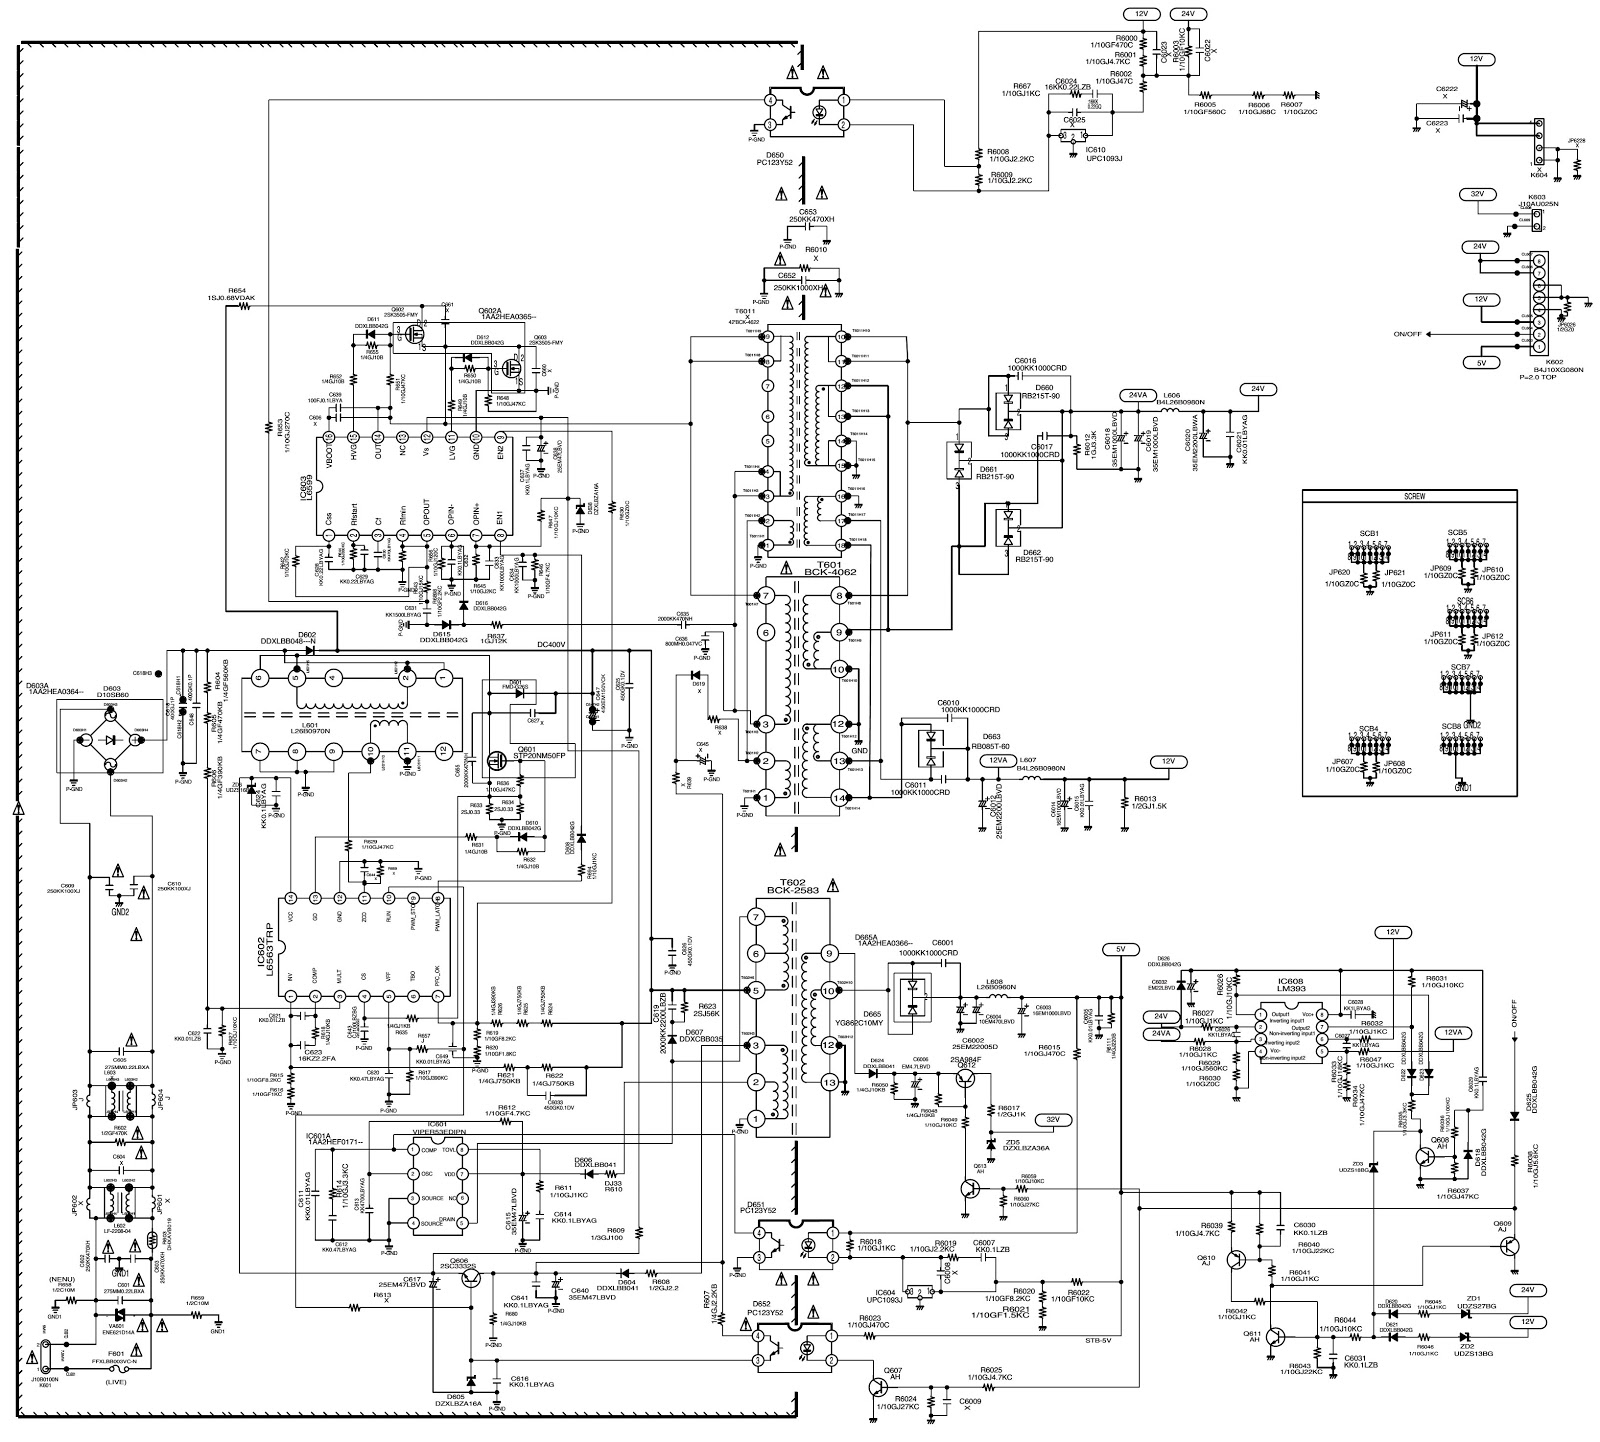 SANYO TV SERVICE MODES and SMPS BACKLIGHT INVERTER SCHEMATICS